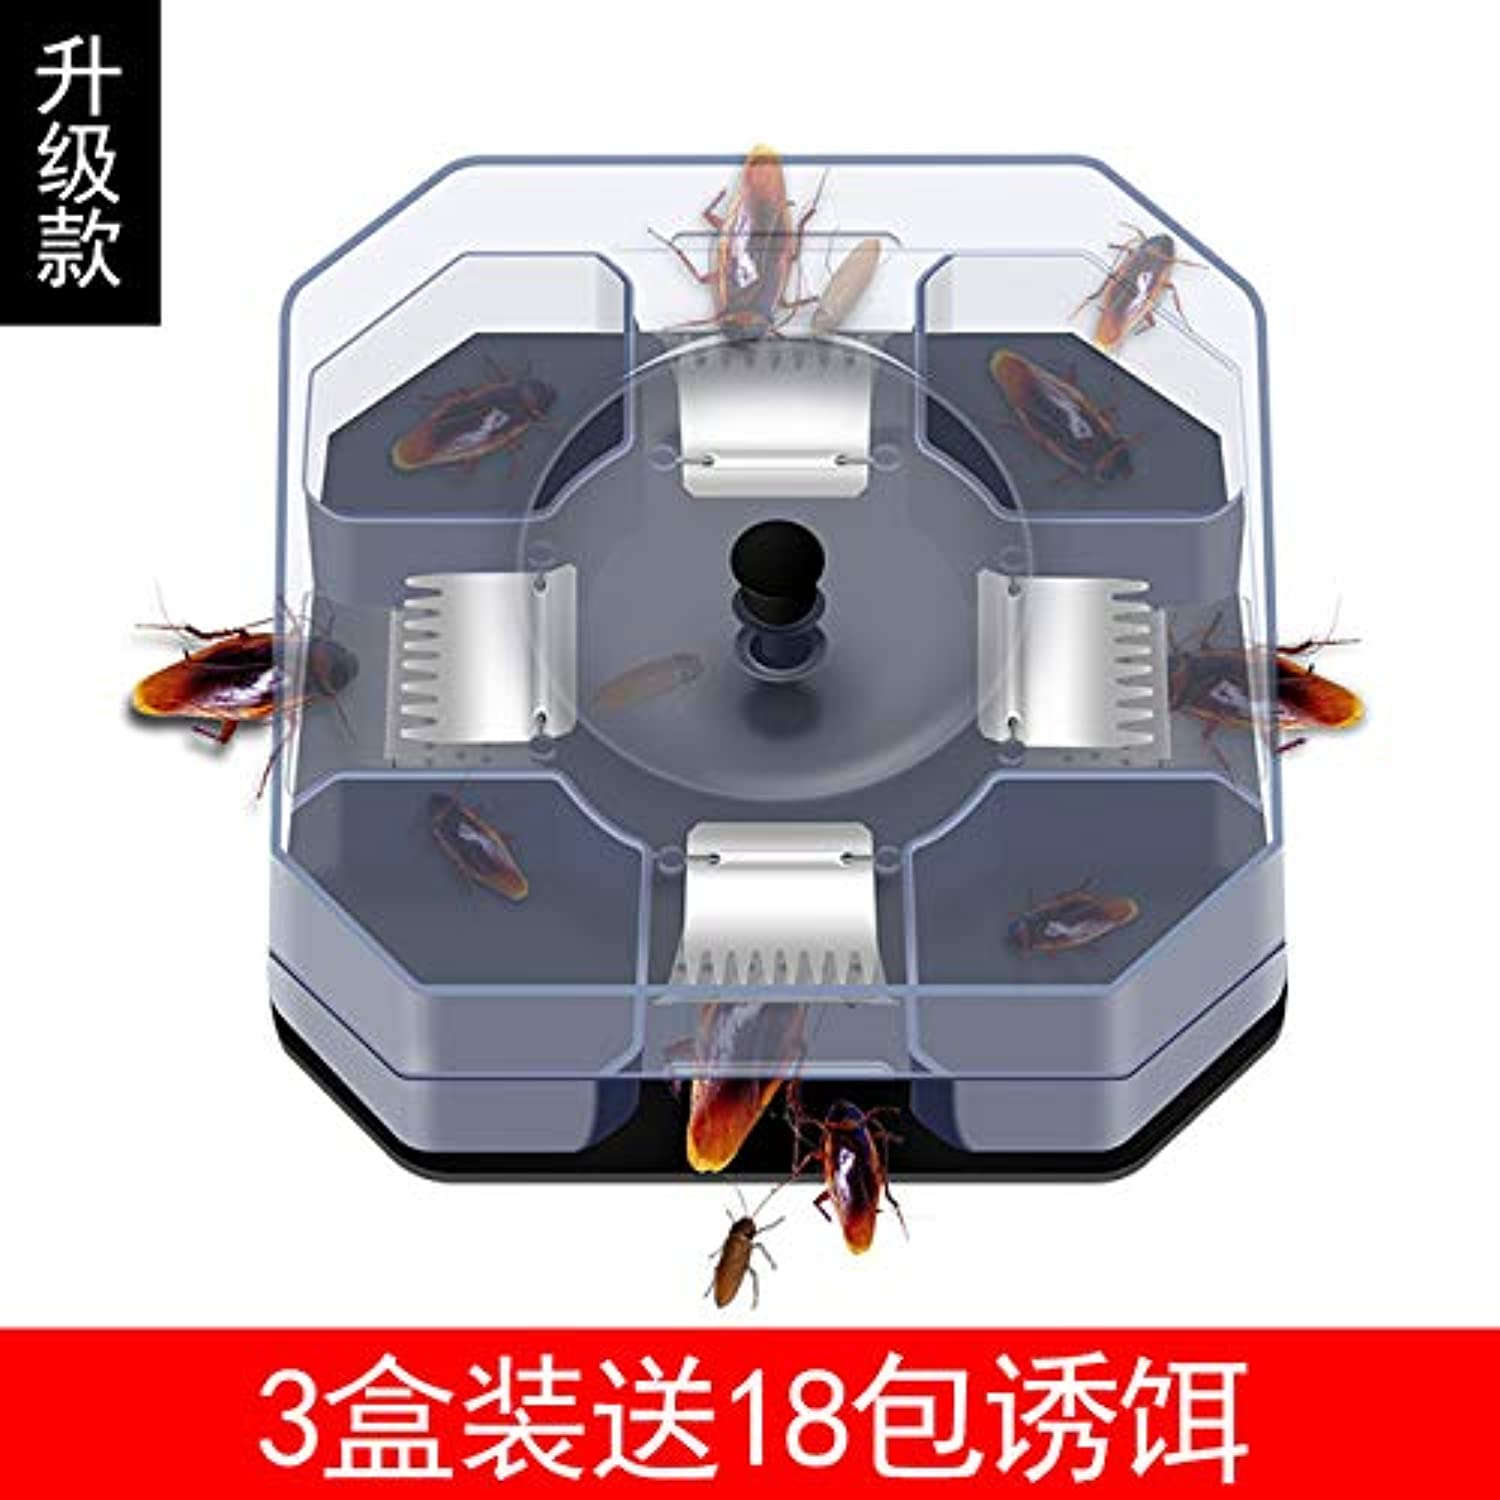 Cockroach Trap Fifth Upgrade Safe Efficient Anti Cockroaches Killer Plus Large Repeller No Pollute for Home Office Kitchen   18 Packets of